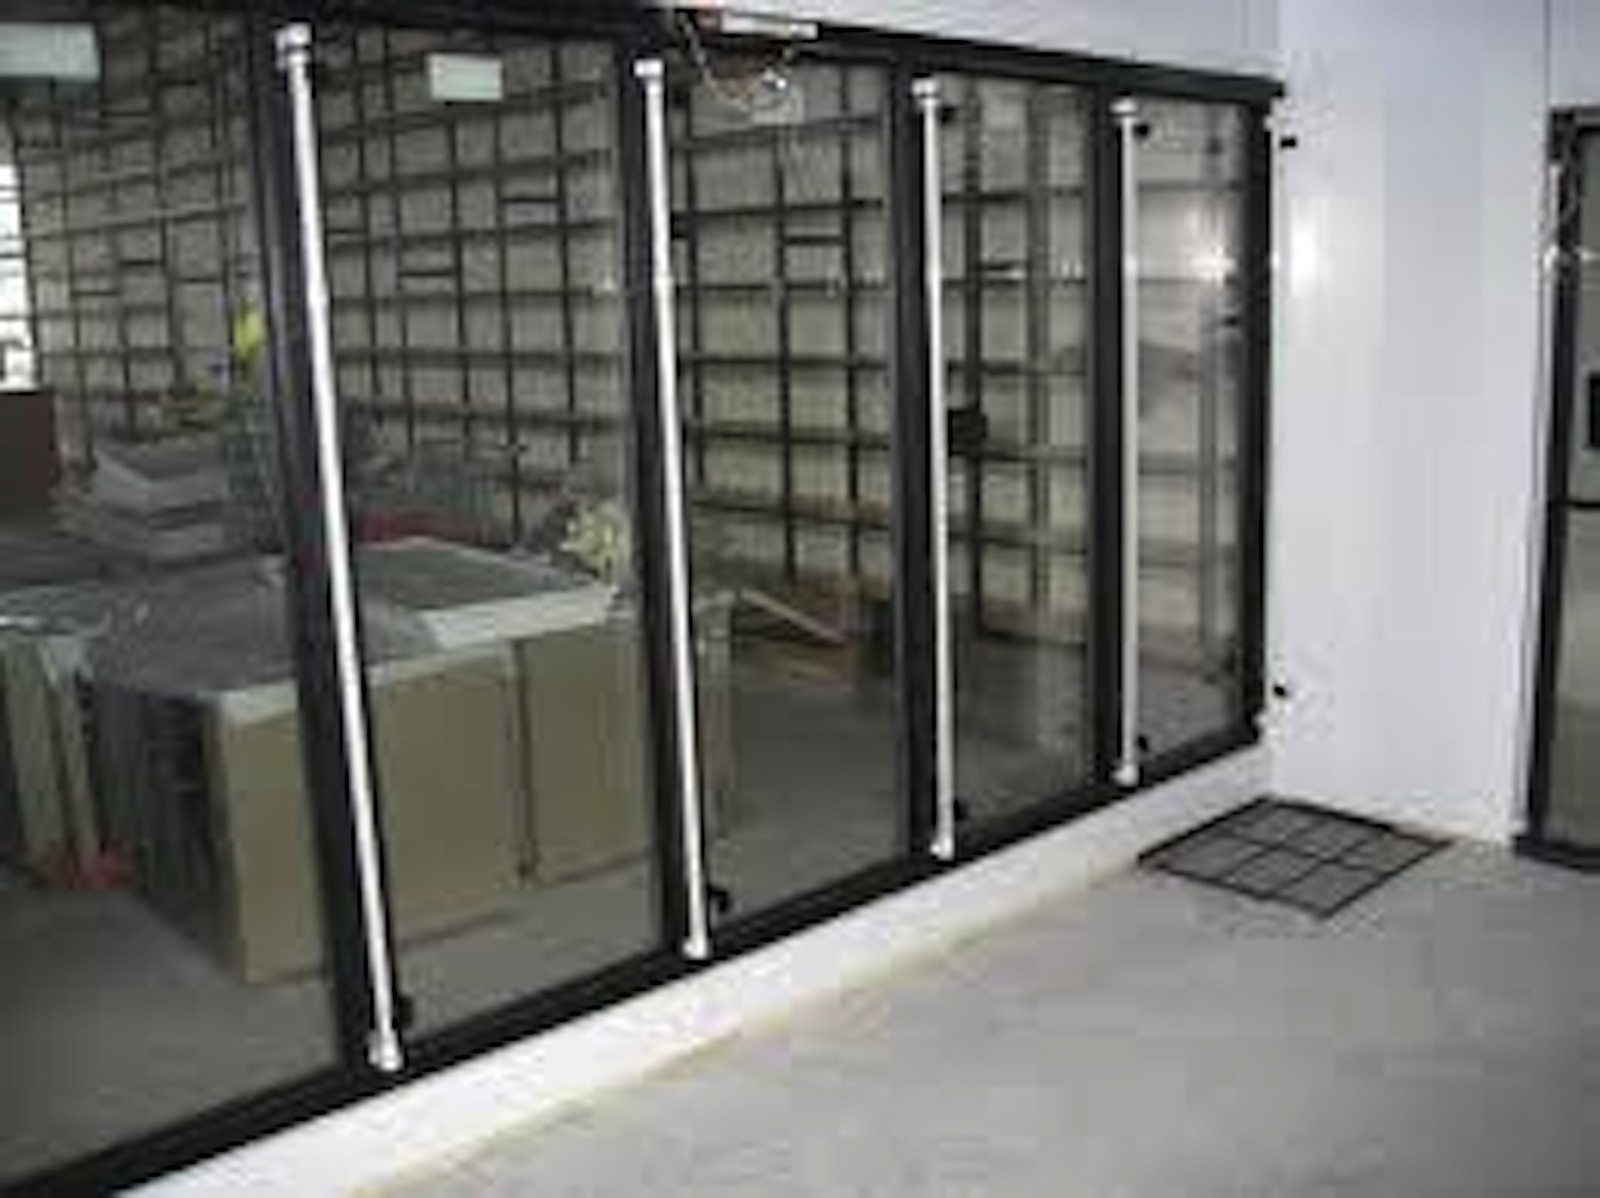 New 7 glass door w led beer cave 25 39 x8 39 x8 39 walk in for 10 door walk in cooler